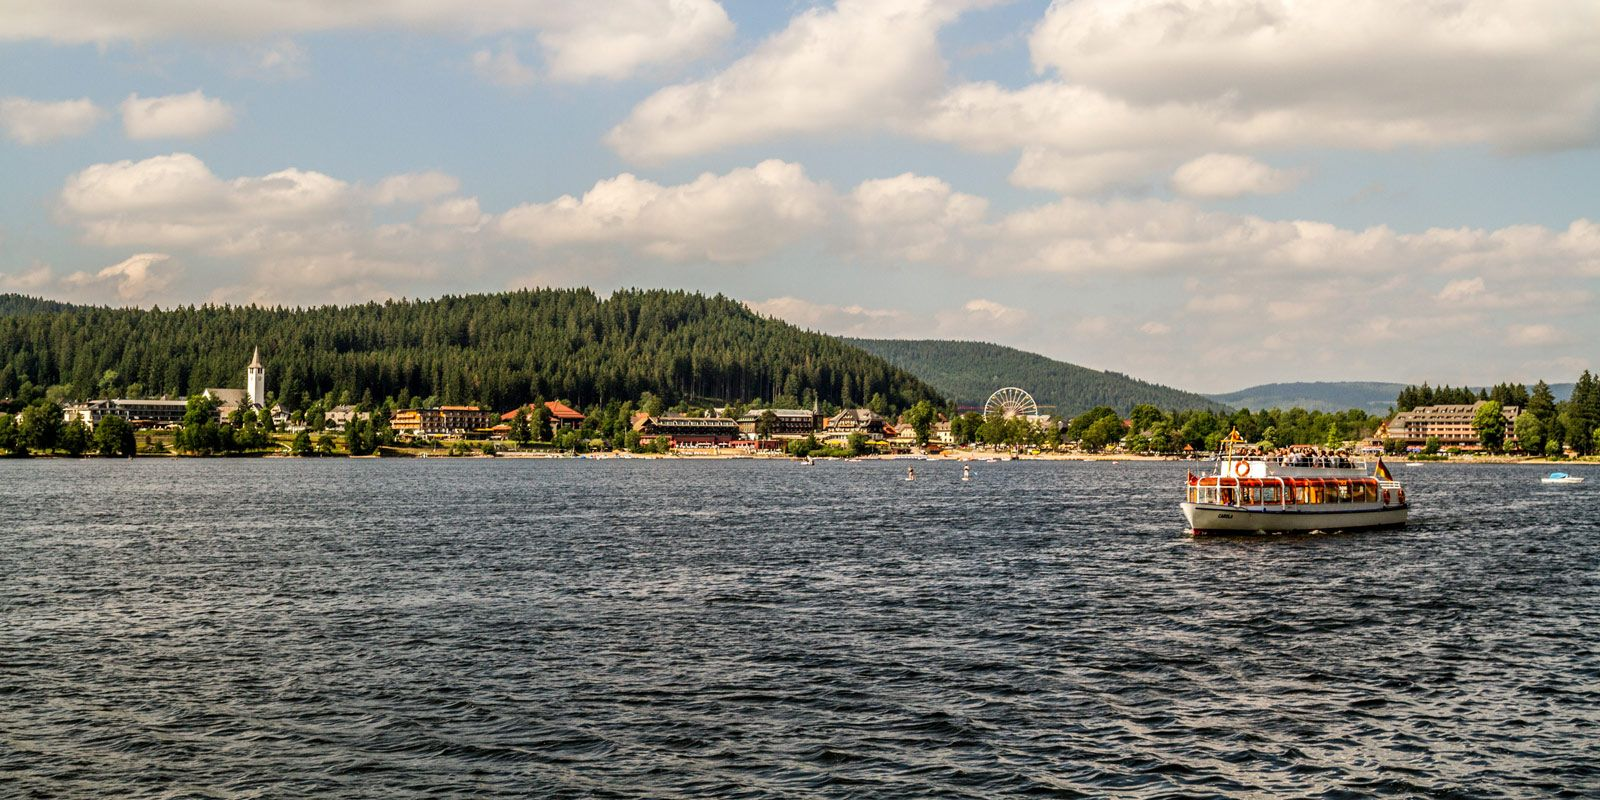 Wellnessurlaub am Titisee